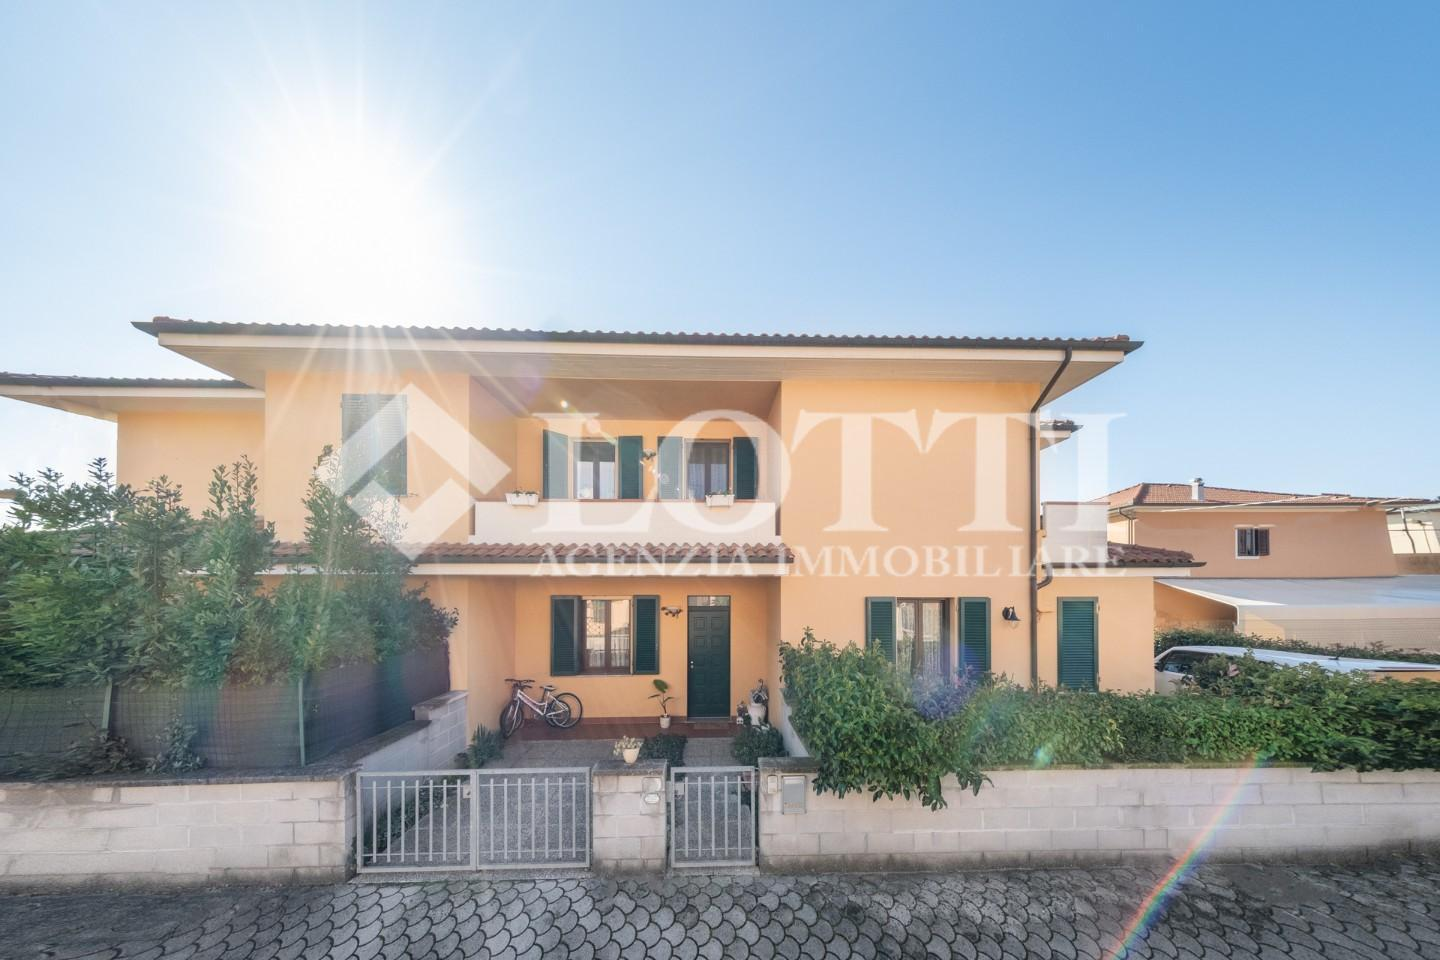 Terraced house for sale in Bientina (PI)